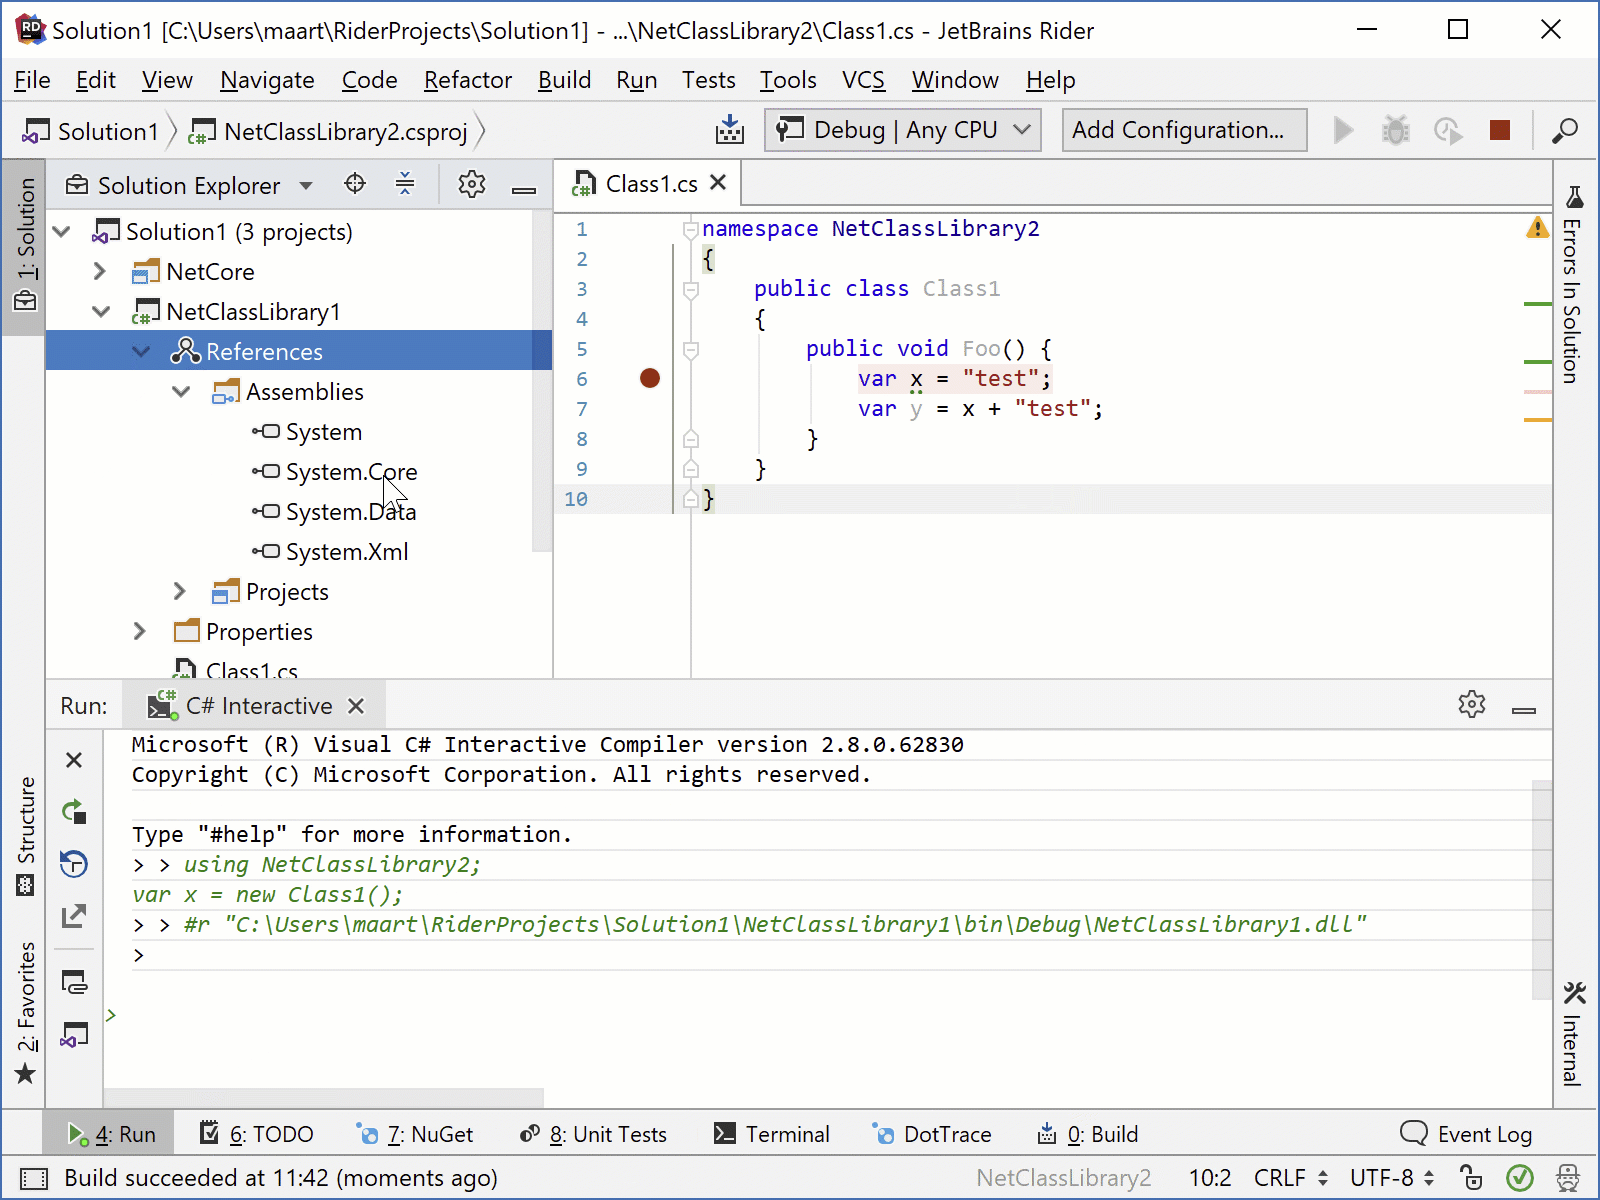 JetBrains Rider: Attaching C# Interactive to the debugger